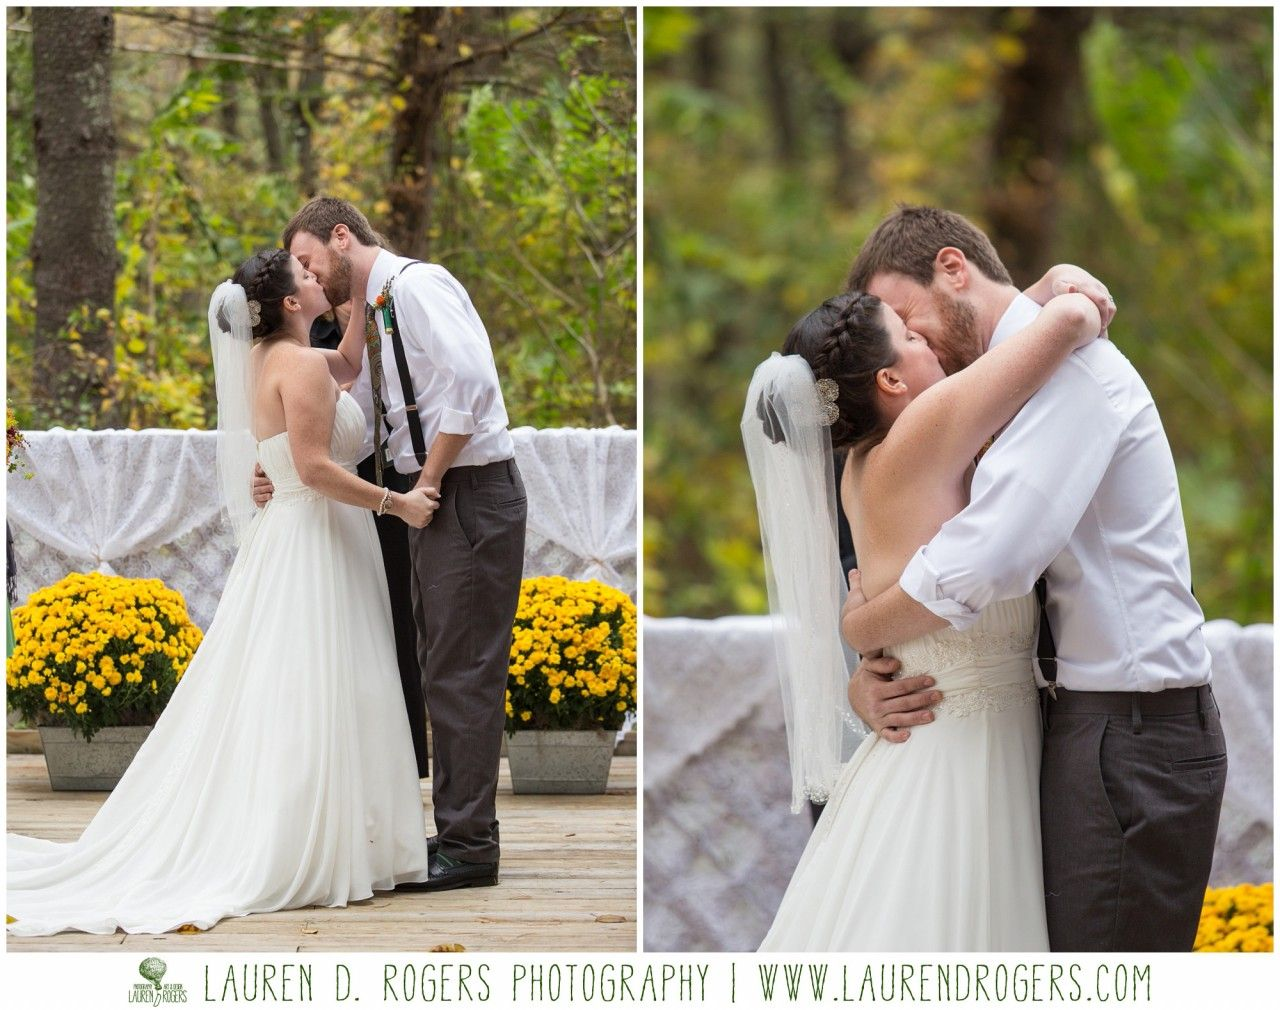 Outdoor Woods Wedding Ceremony: First Kiss, Ceremony Photos, Outdoor Forest Wedding